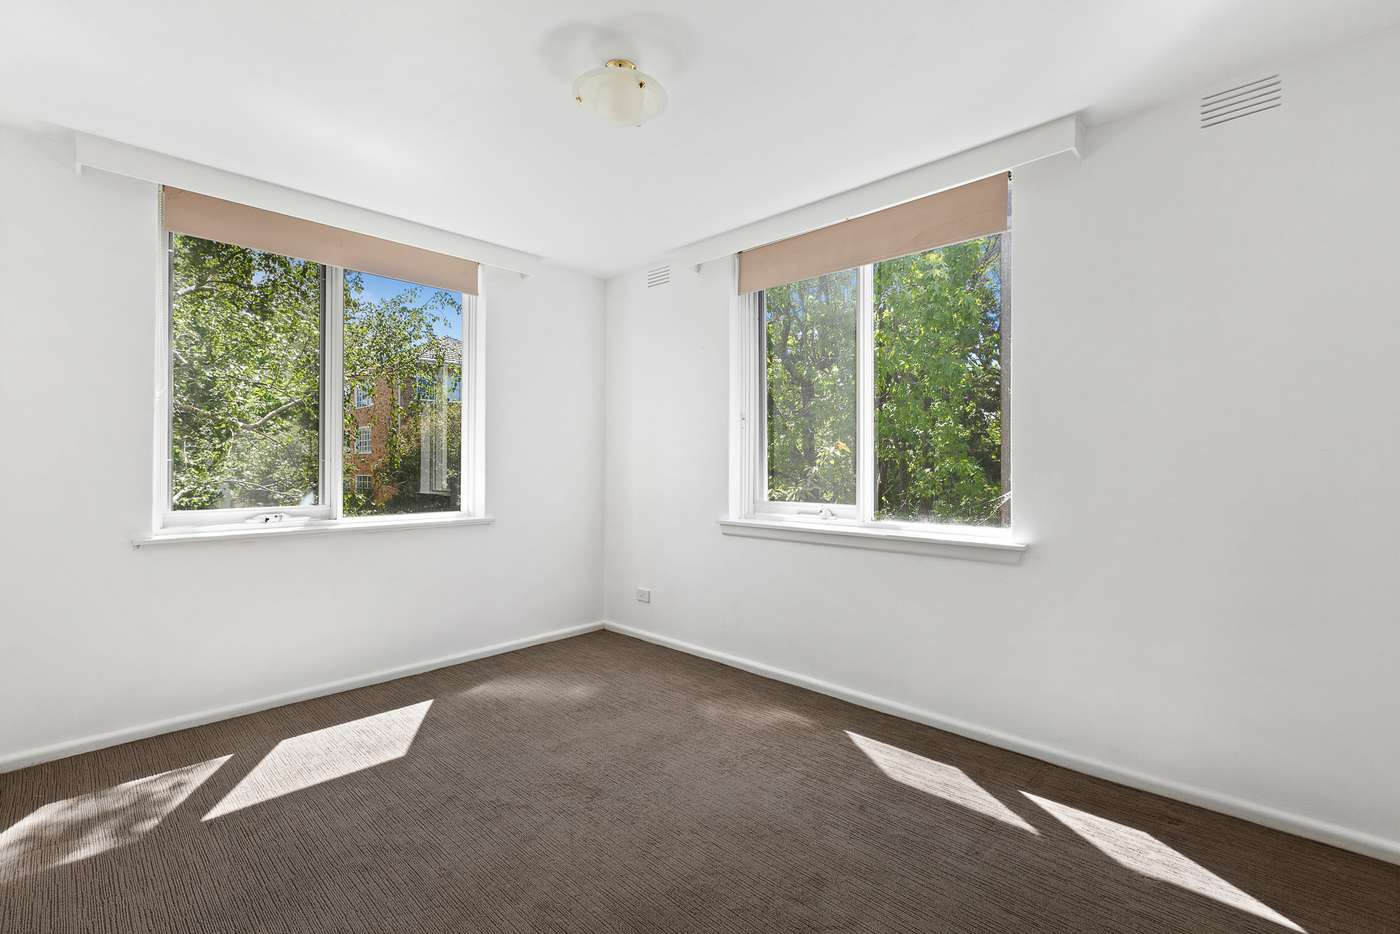 Sixth view of Homely apartment listing, 6/17-21 Tivoli  Place, South Yarra VIC 3141